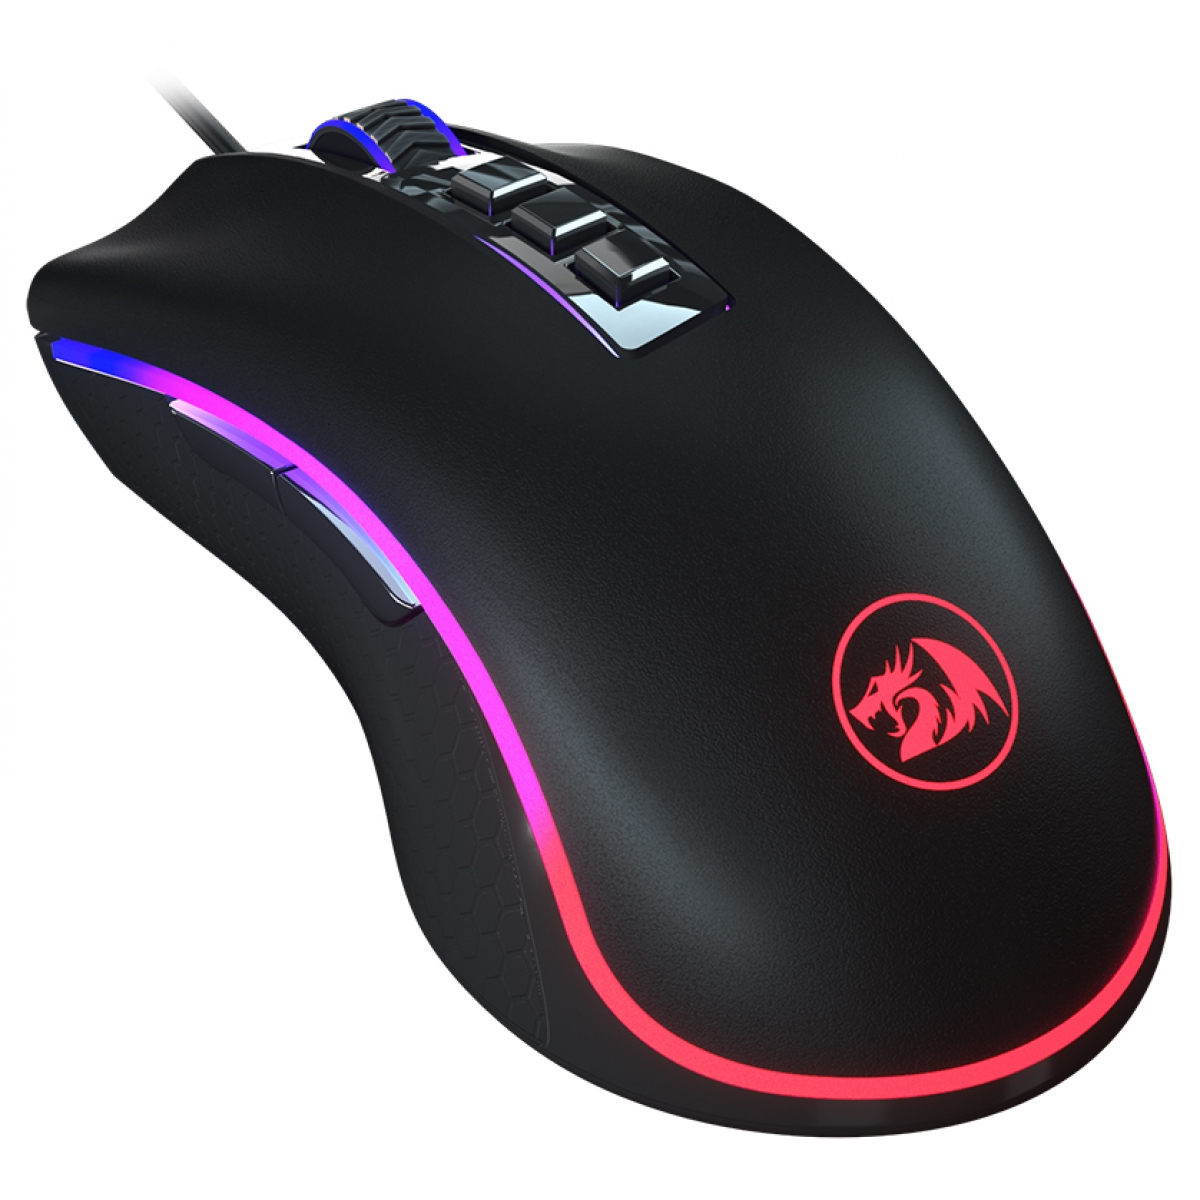 Mouse Gamer Redragon King Cobra Chroma RGB, 24000 DPI, 7 Botões Programáveis, Black, M711-FPS